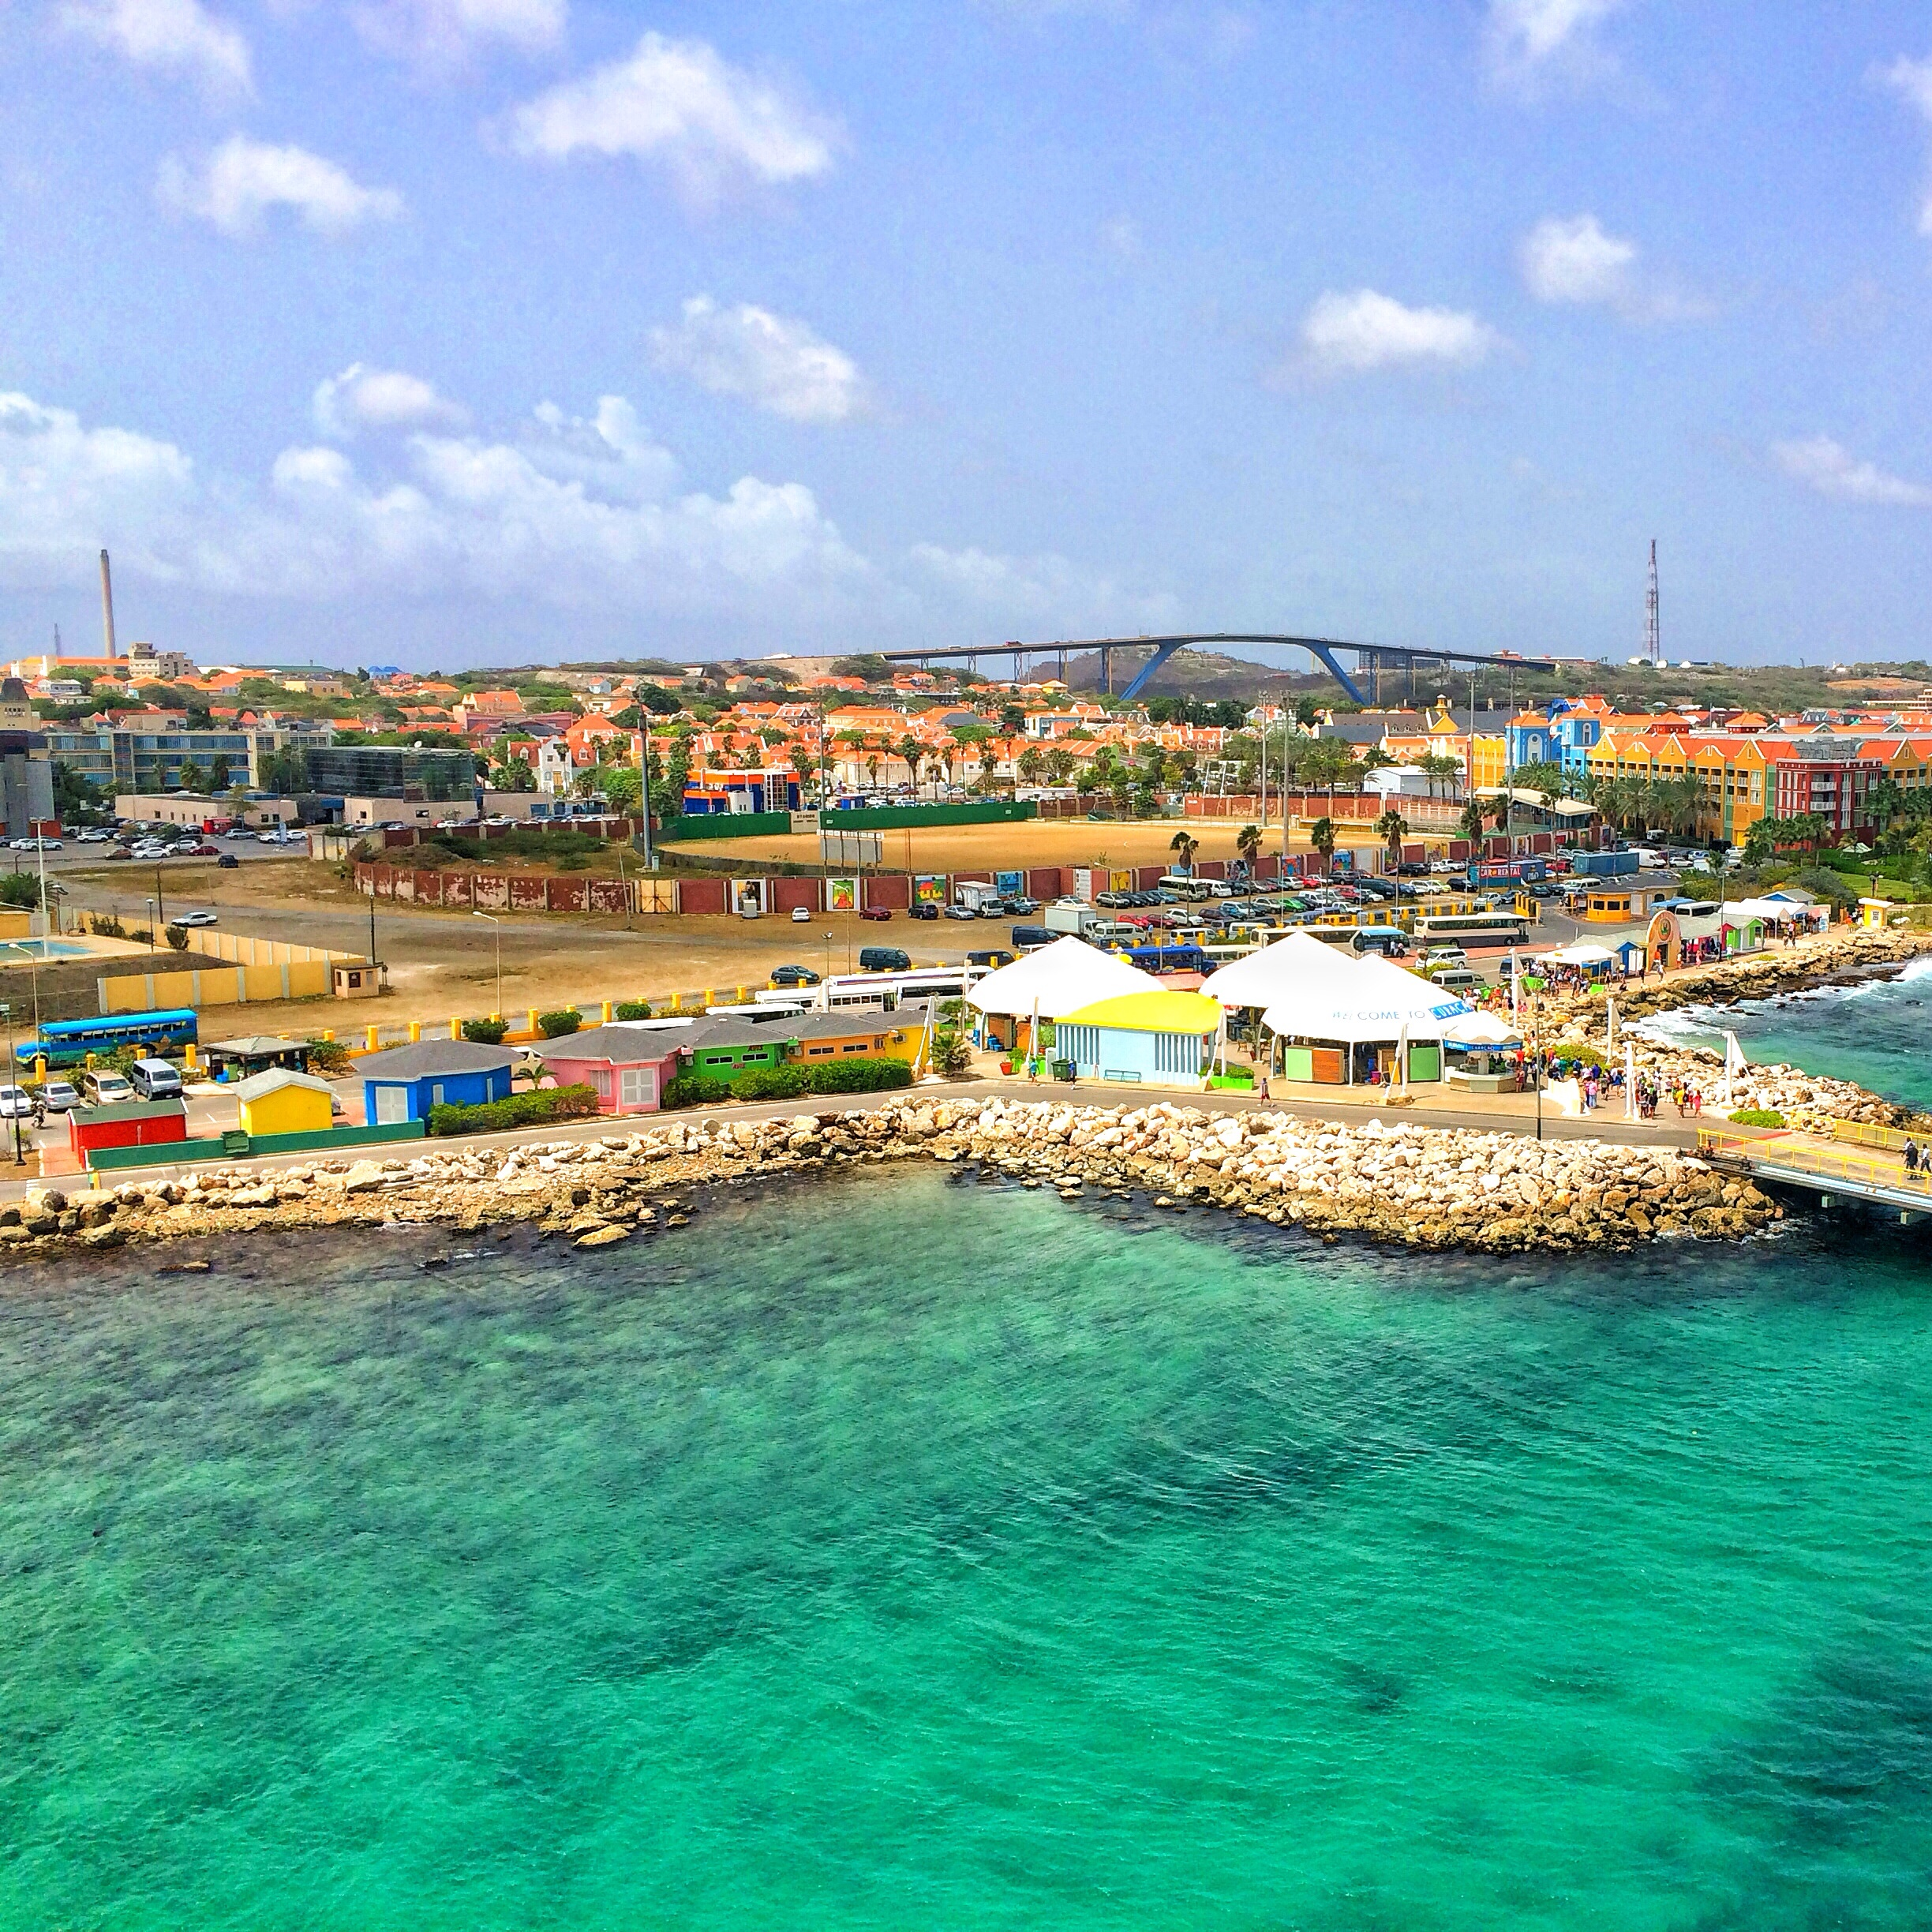 Curacao Viewed from the Carnival Freedom